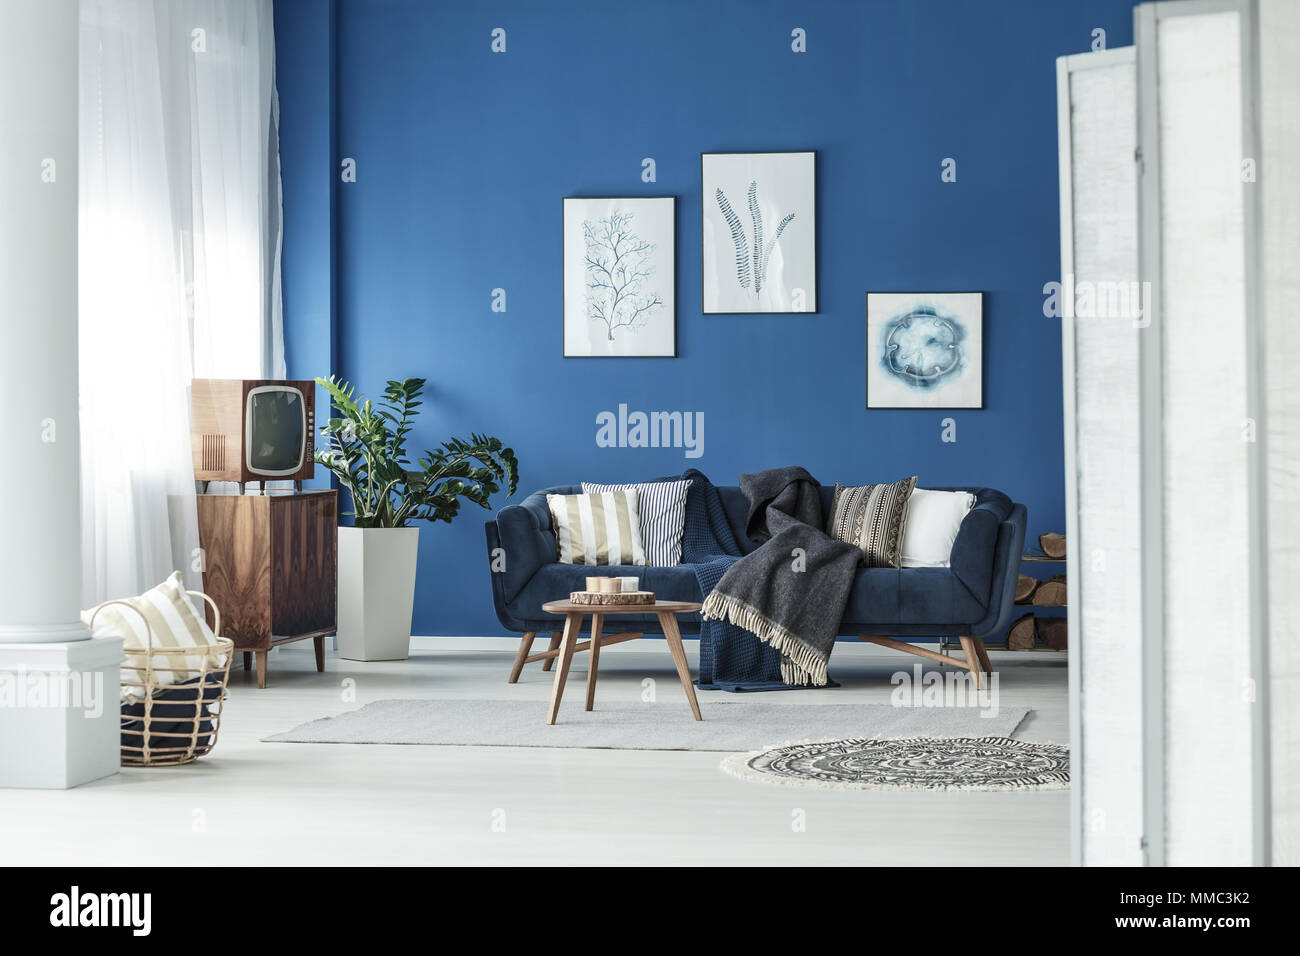 Spacious Blue And White Living Room With Old Small Television Stock Photo Alamy